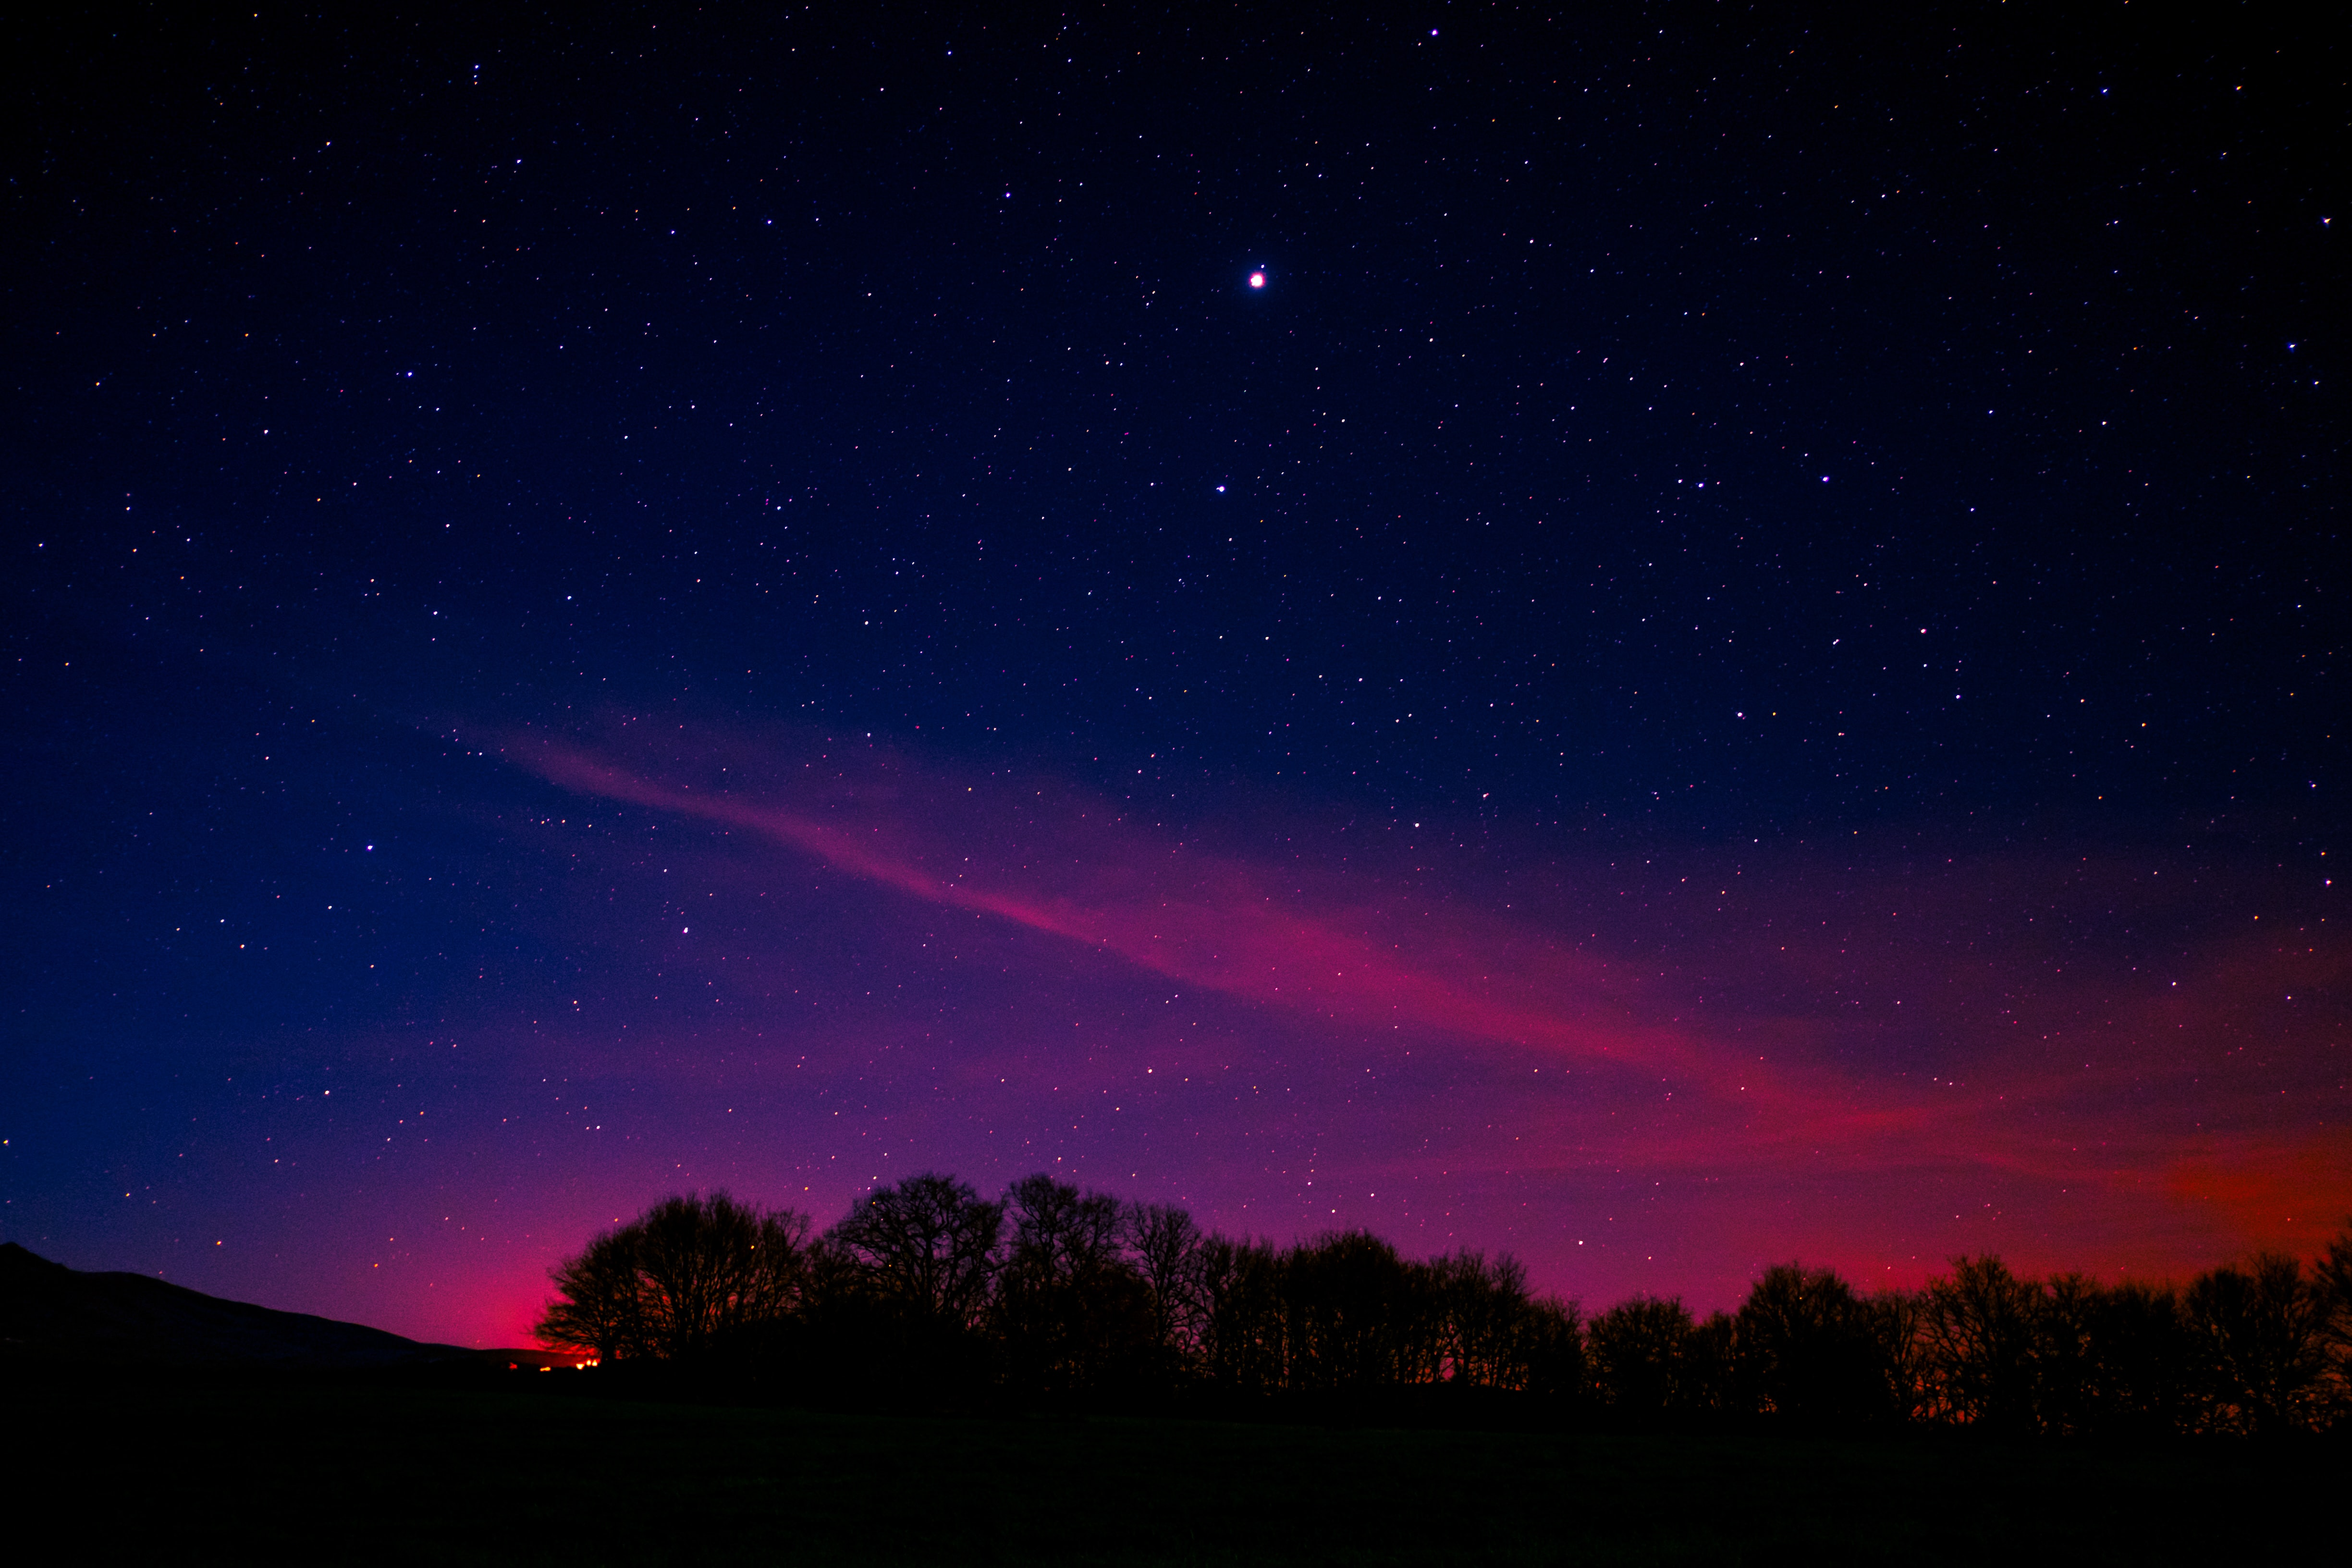 silhouette of tree with pink clouds under starry night